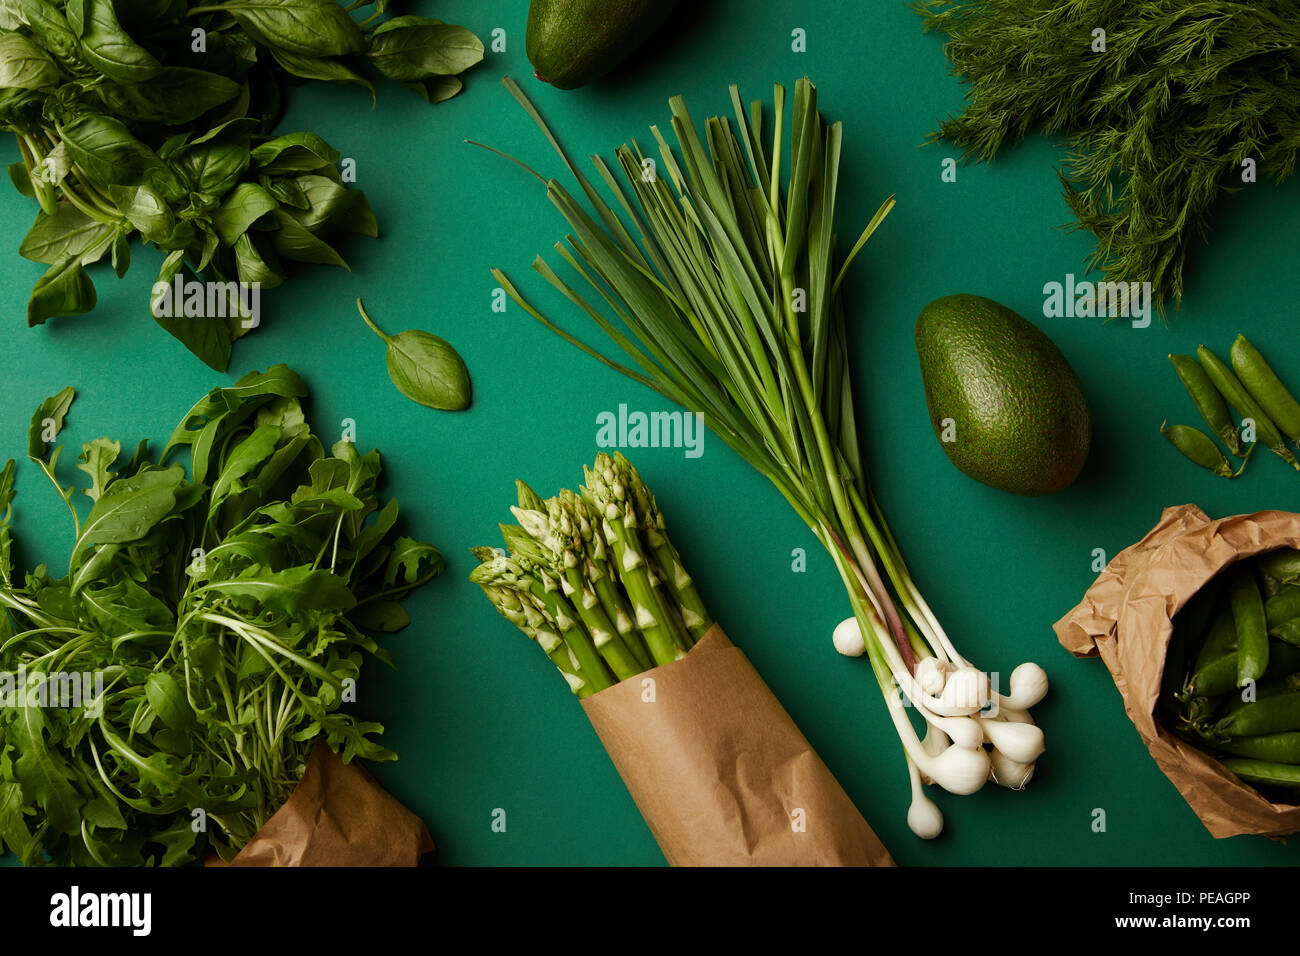 top view of various ripe vegetables on green surface - Stock Image